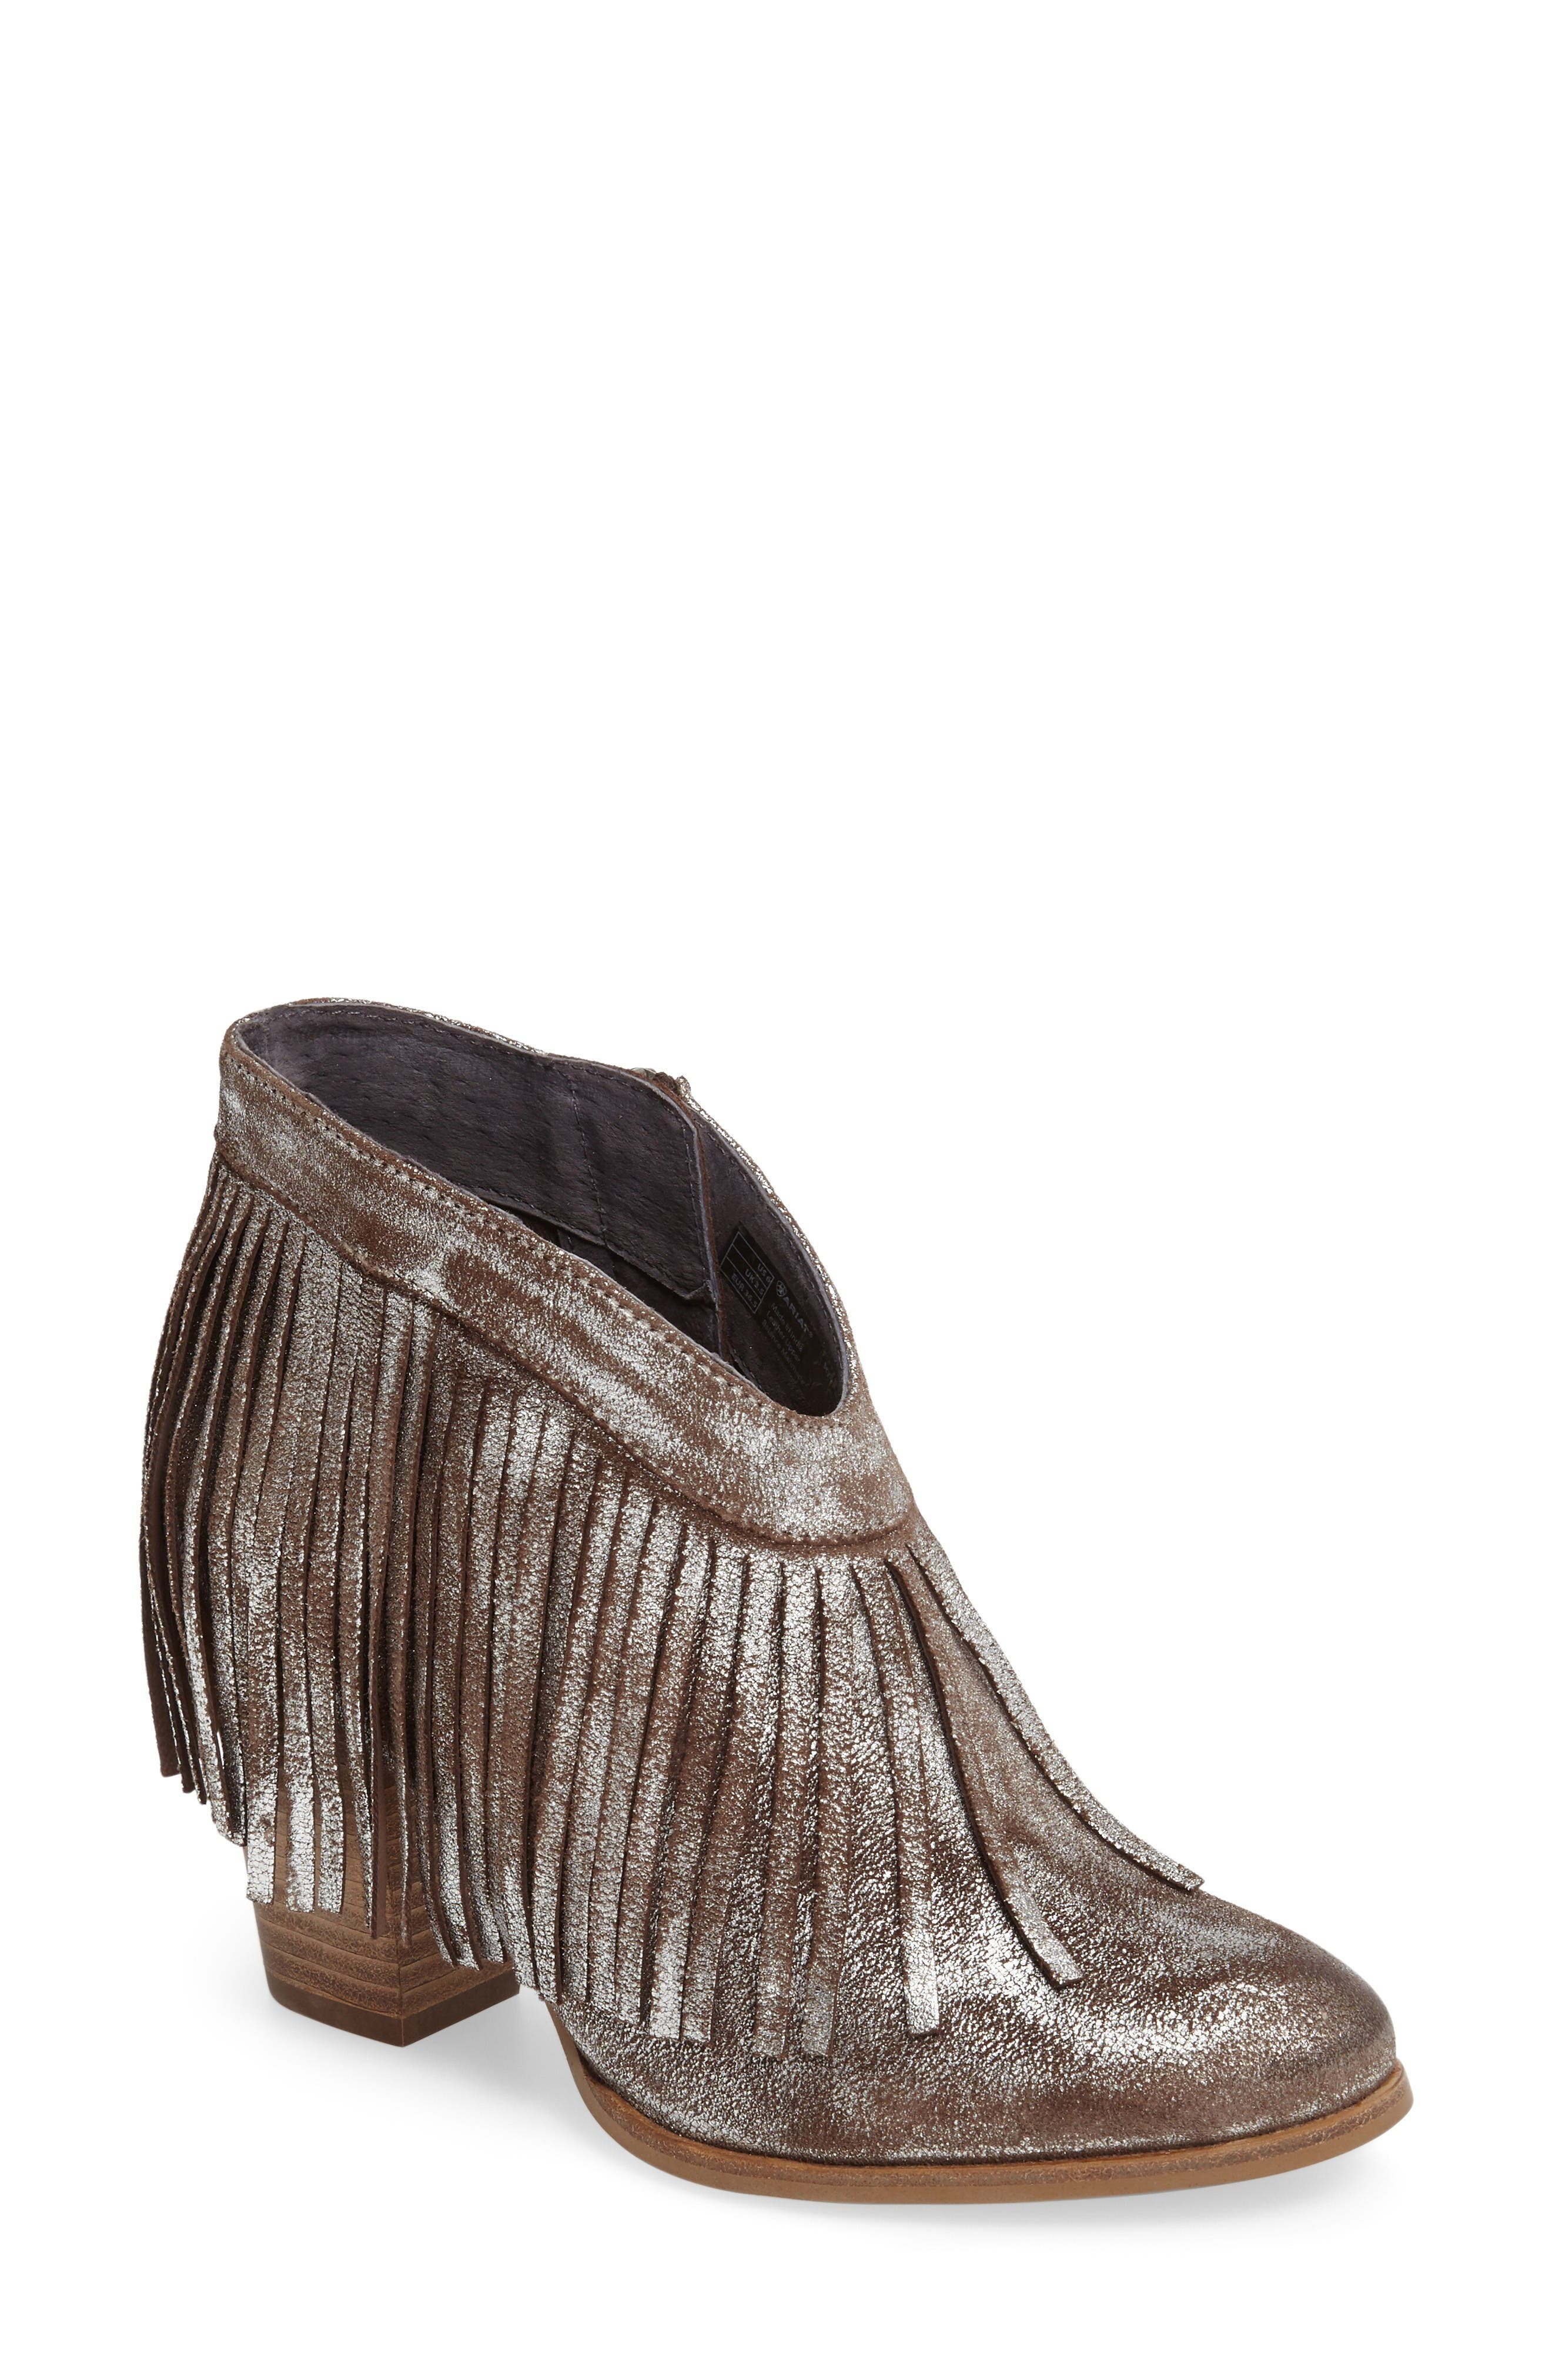 Ariat Unbridled Layla Fringed Bootie (Women)